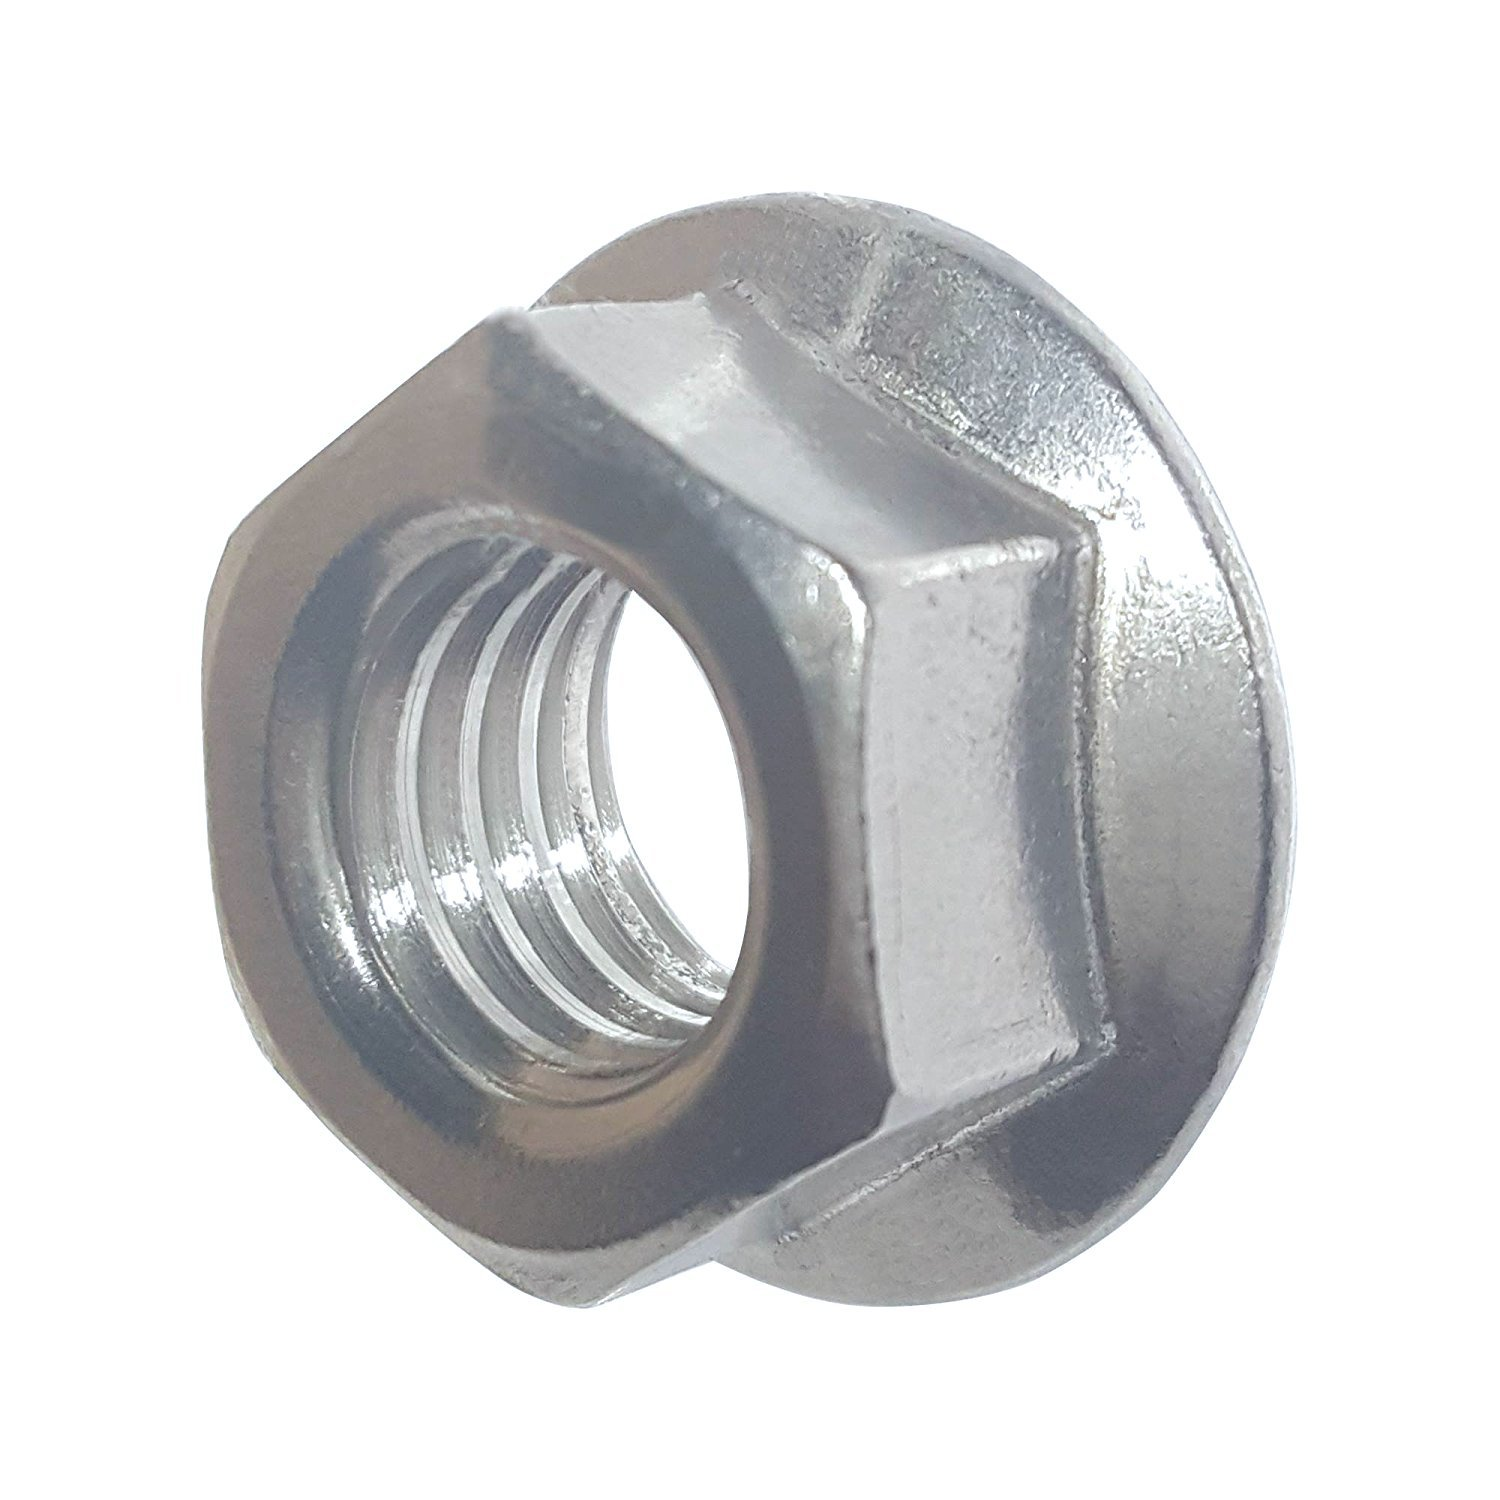 10-24 Zinc Plated Serrated Flange Hex Lock Nuts Fifty BCP267 50